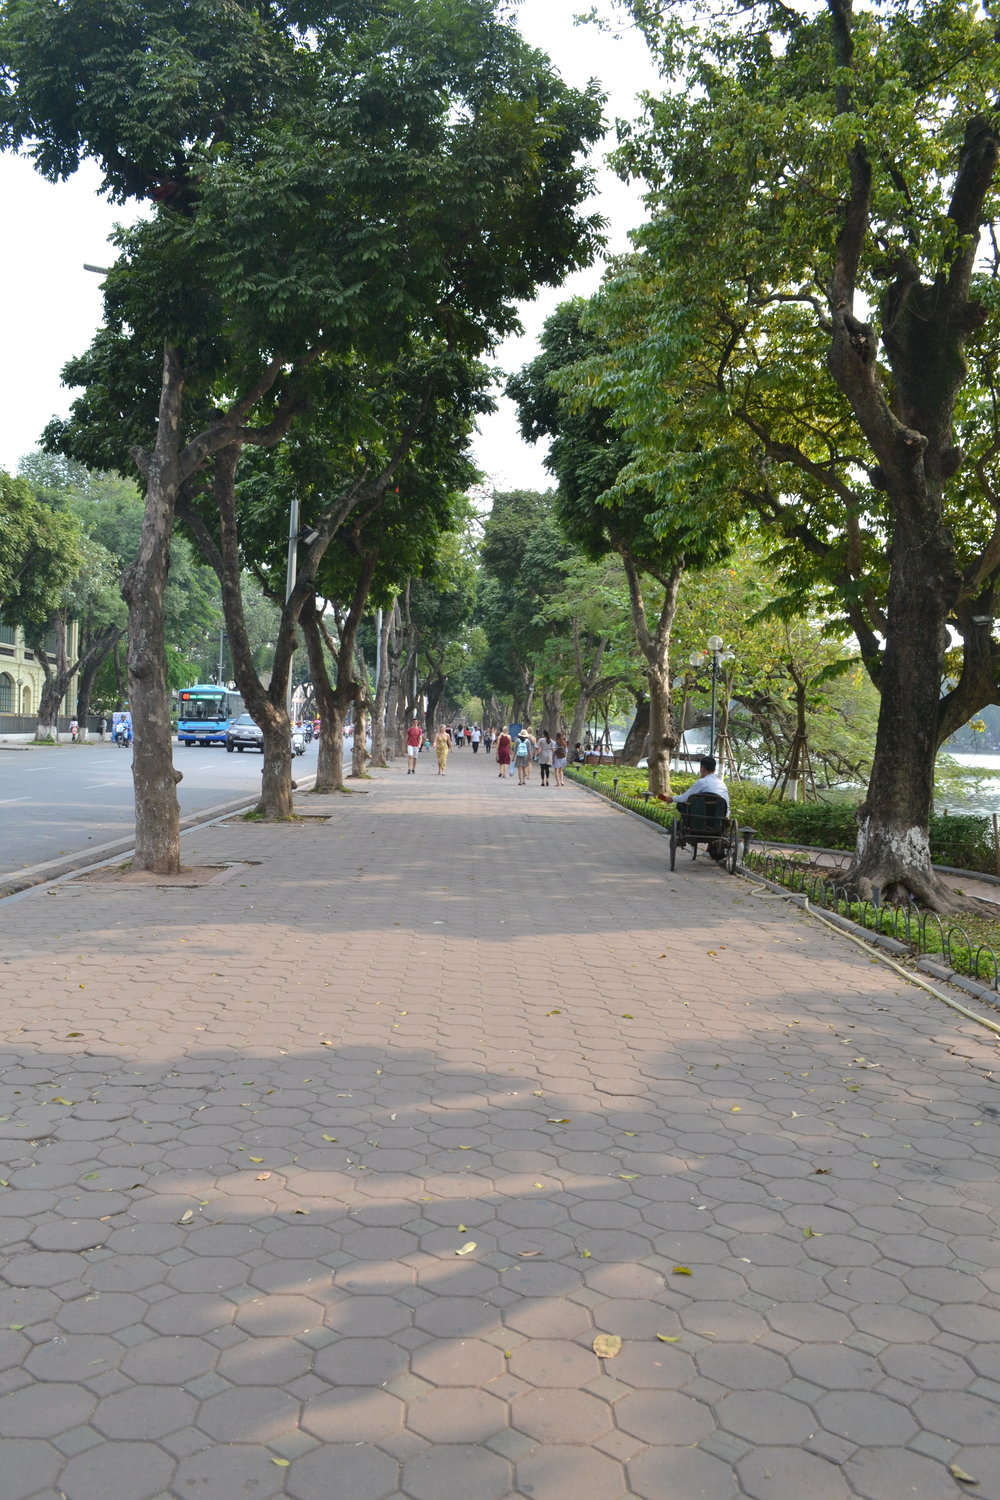 Wide Sidewalks with Trees Providing Shade